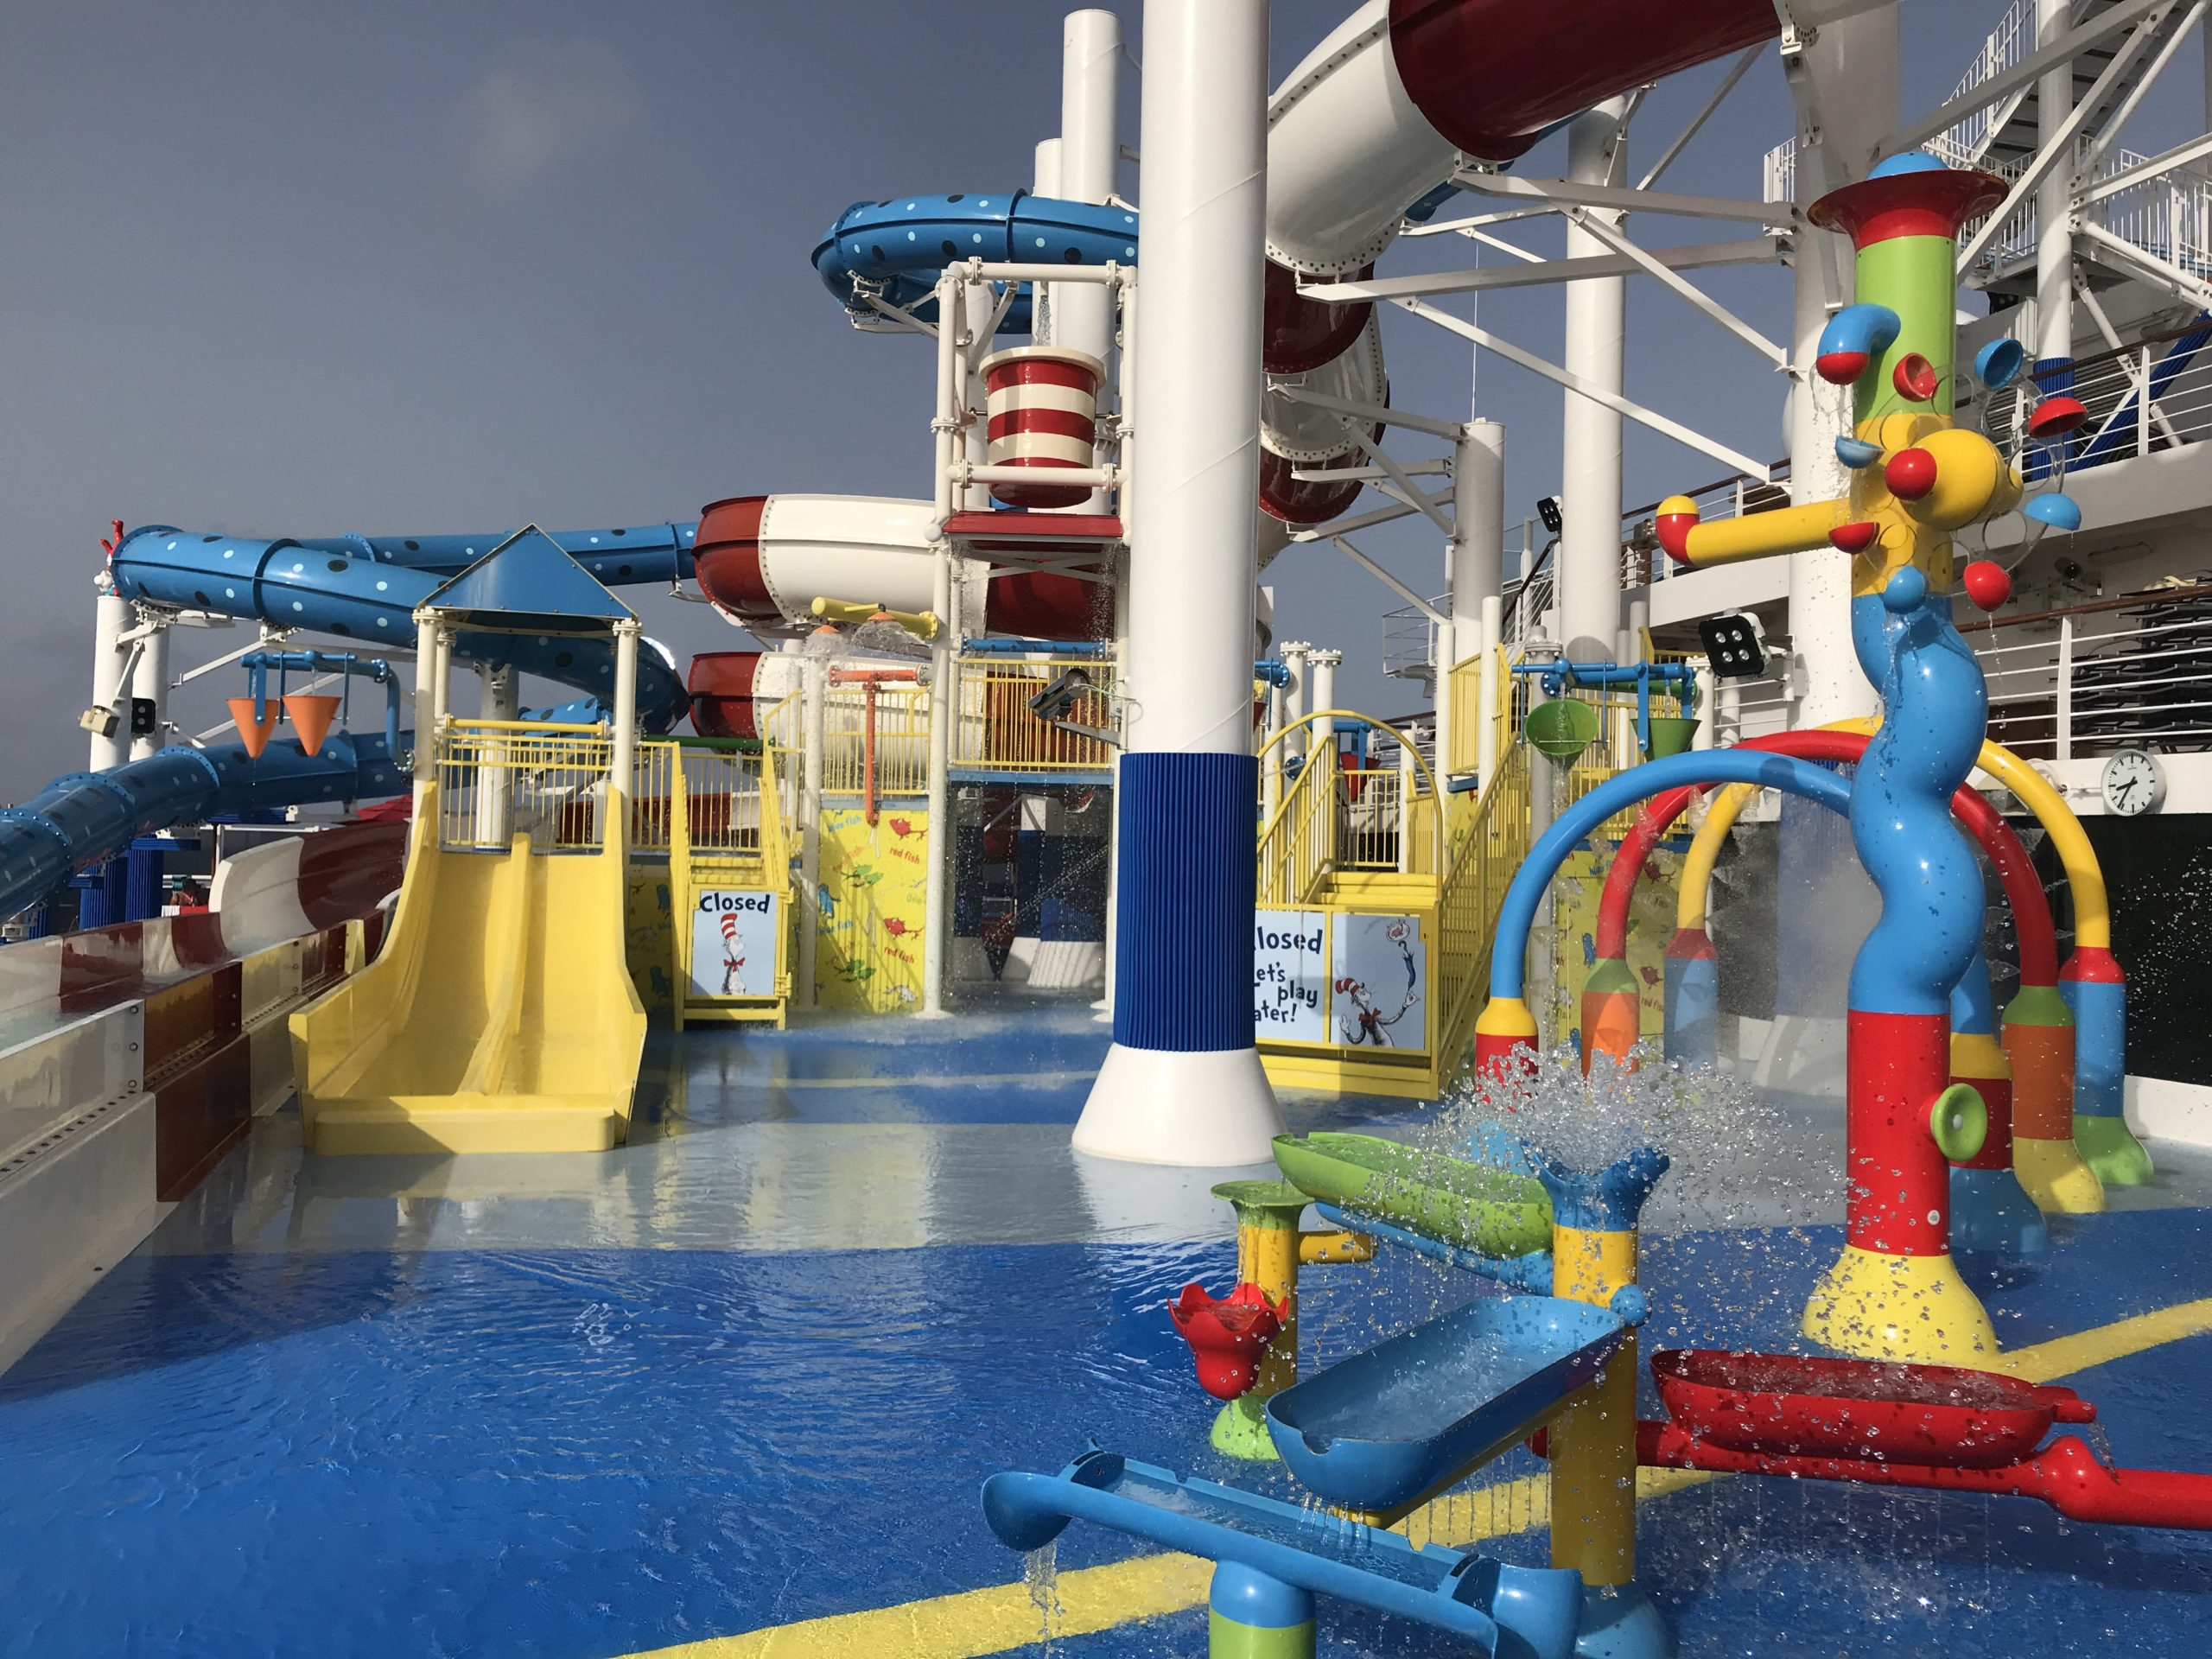 Seuss pool? Yes please! The best Caribbean cruise pays attention to theming.